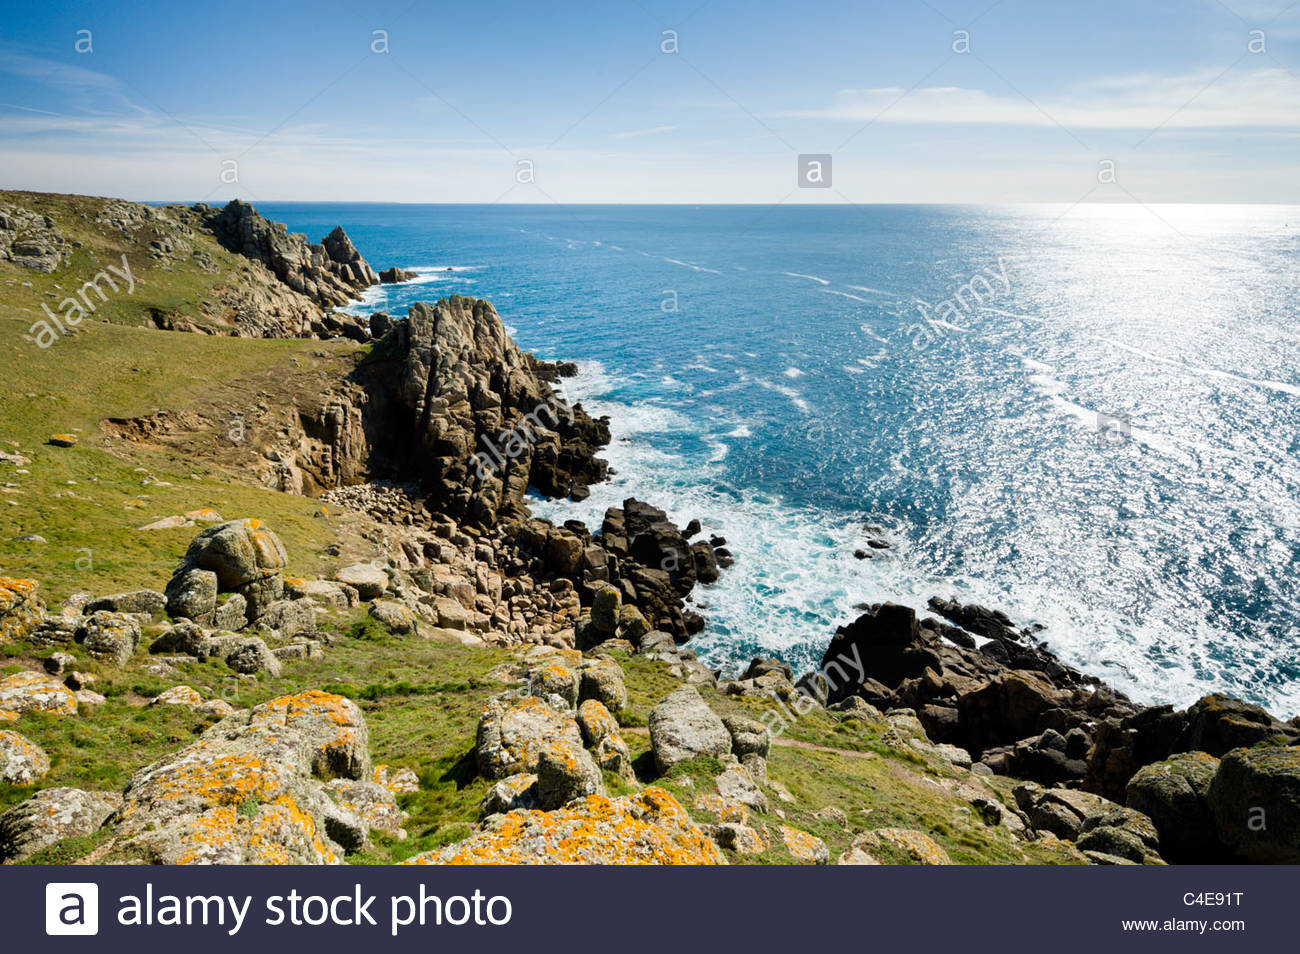 The rugged coastline at Gwennap Head, Penwith peninsula, West Cornwall. - Stock Image